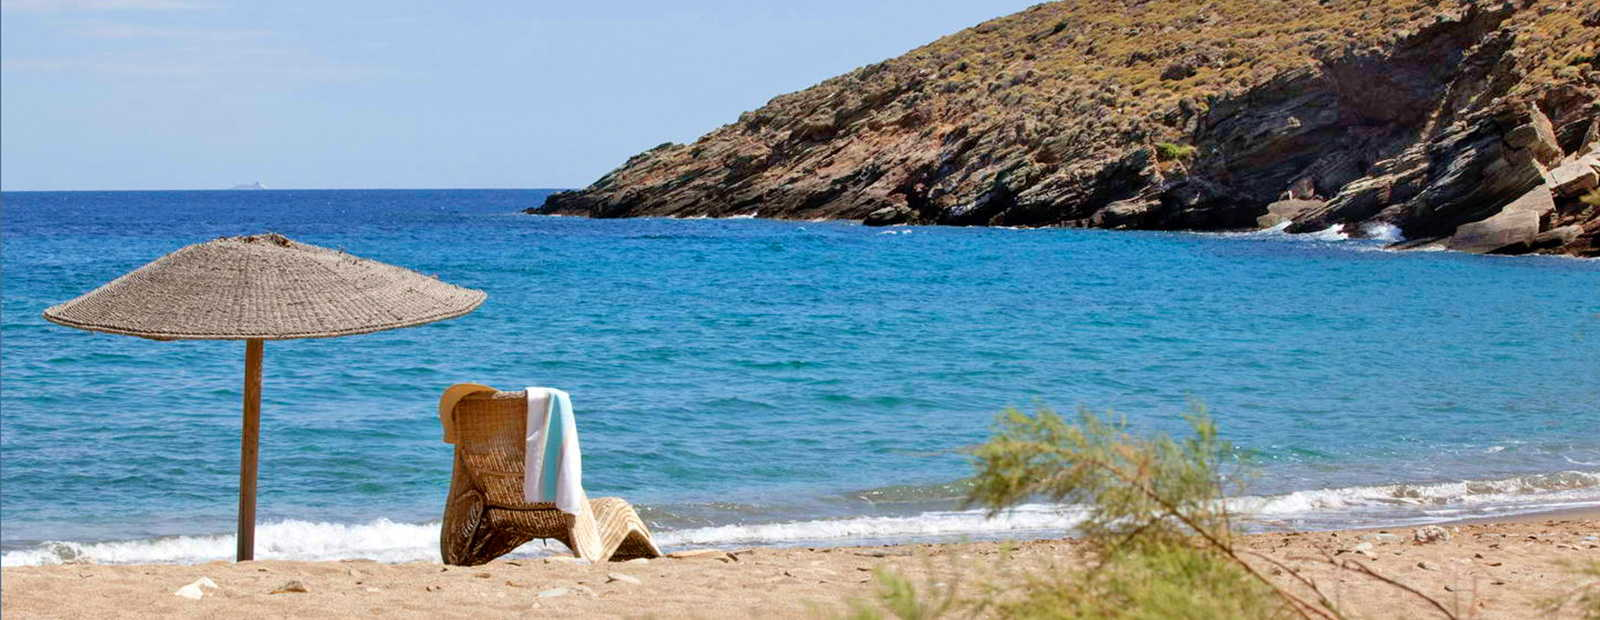 Exclusive holiday villas on Kea Island